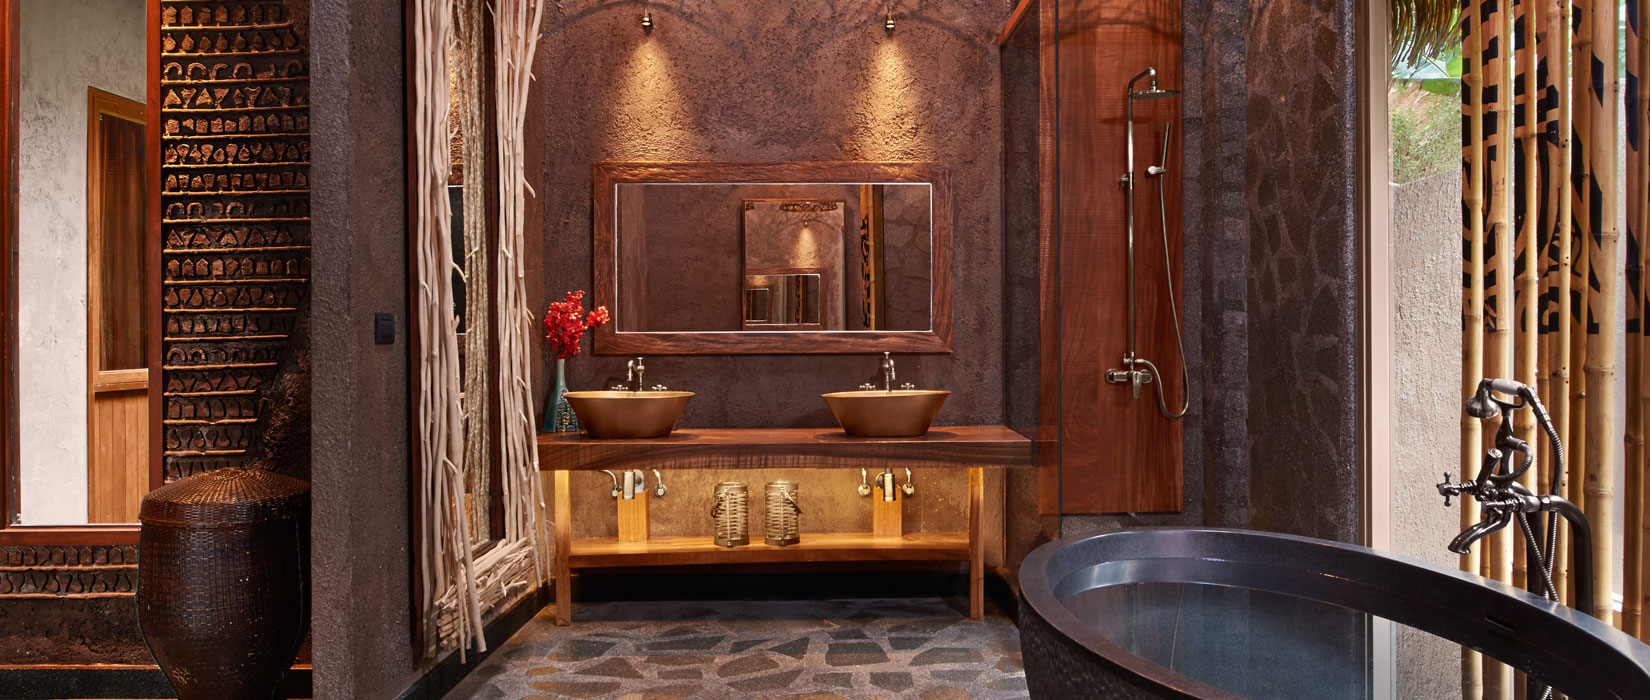 OUTSIDE SHOWER AND A STAND-ALONE BATHTUB - Keemala Hotel Phuket